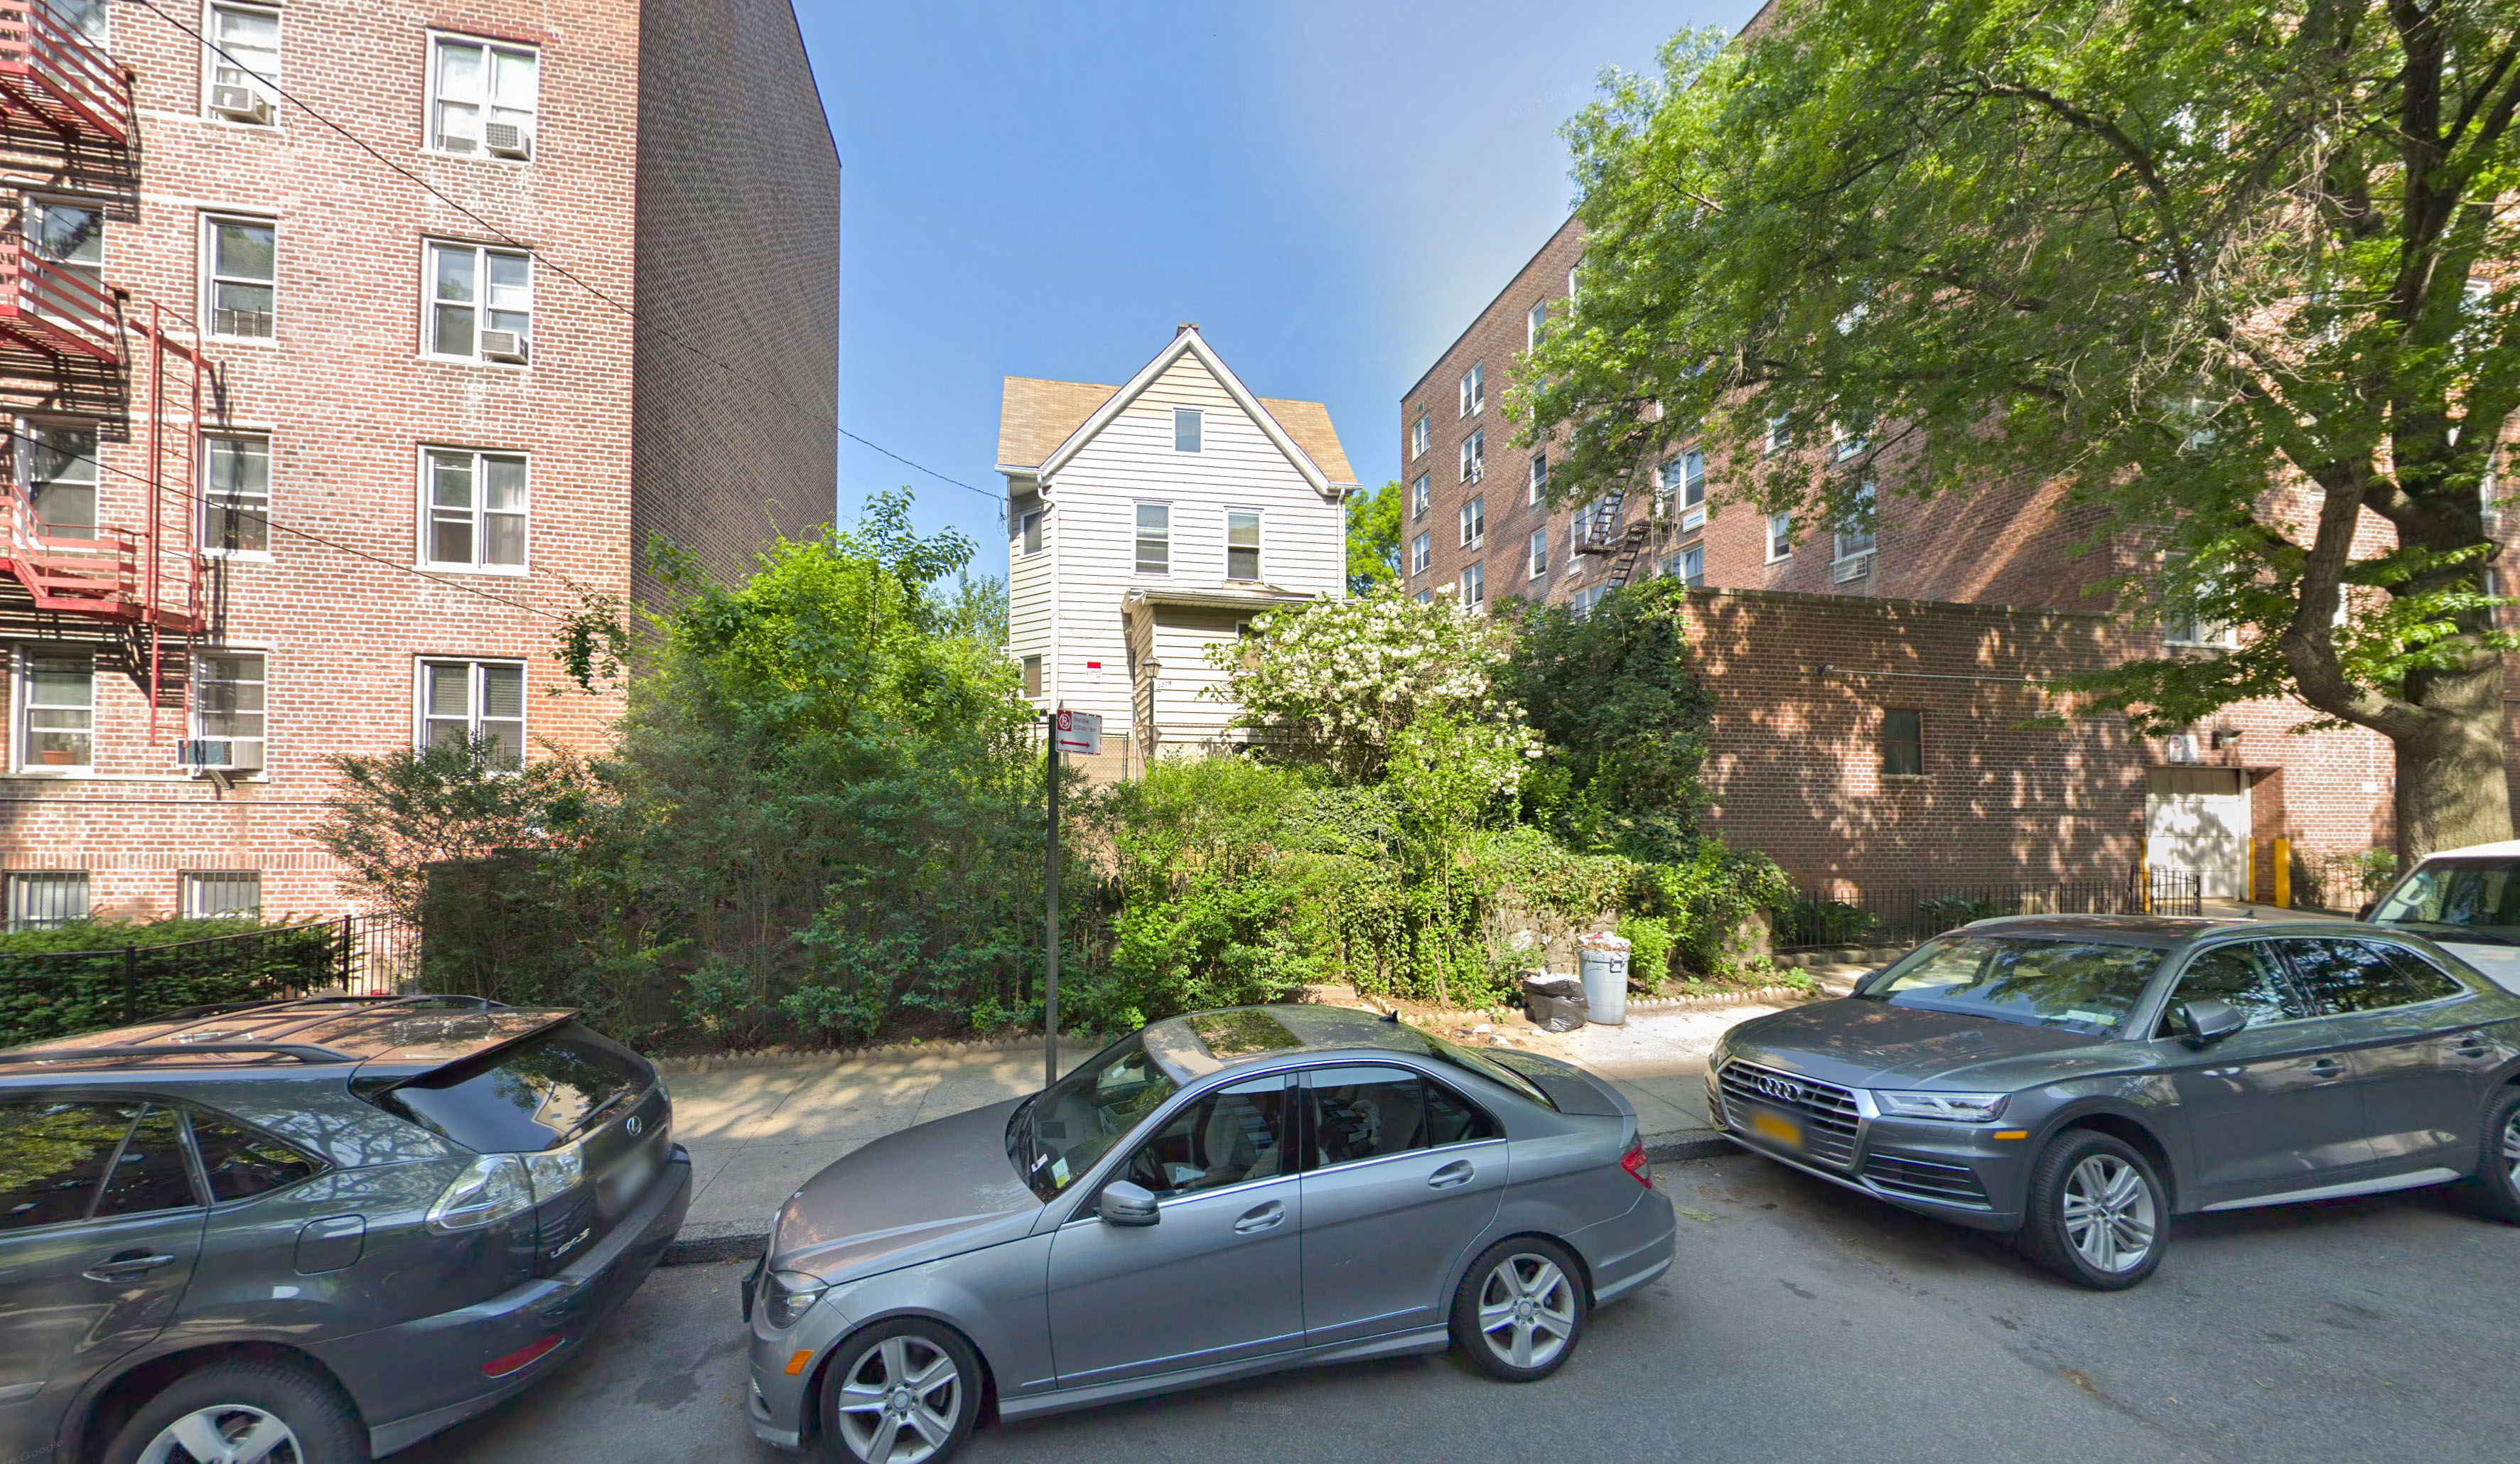 2279 Barker Avenue, via Google Maps